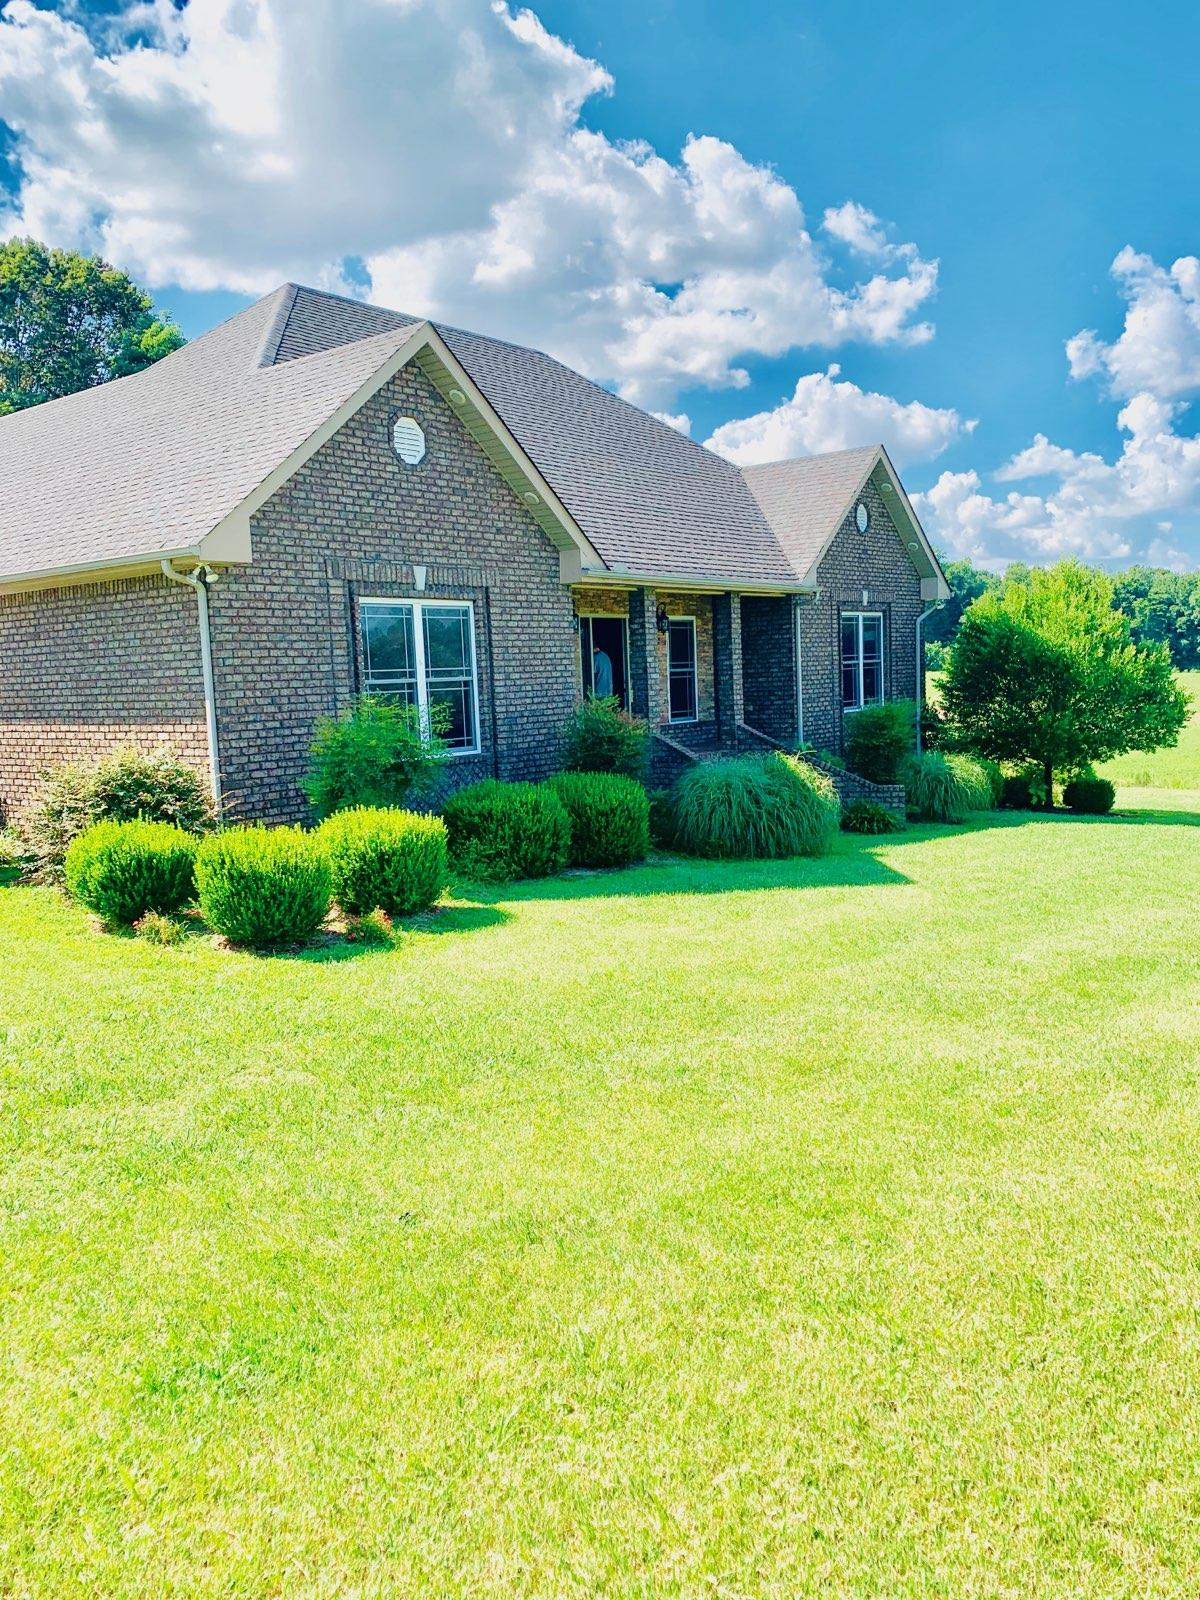 6512 Buzzard Creek Rd, Cedar Hill, TN 37032 - Cedar Hill, TN real estate listing